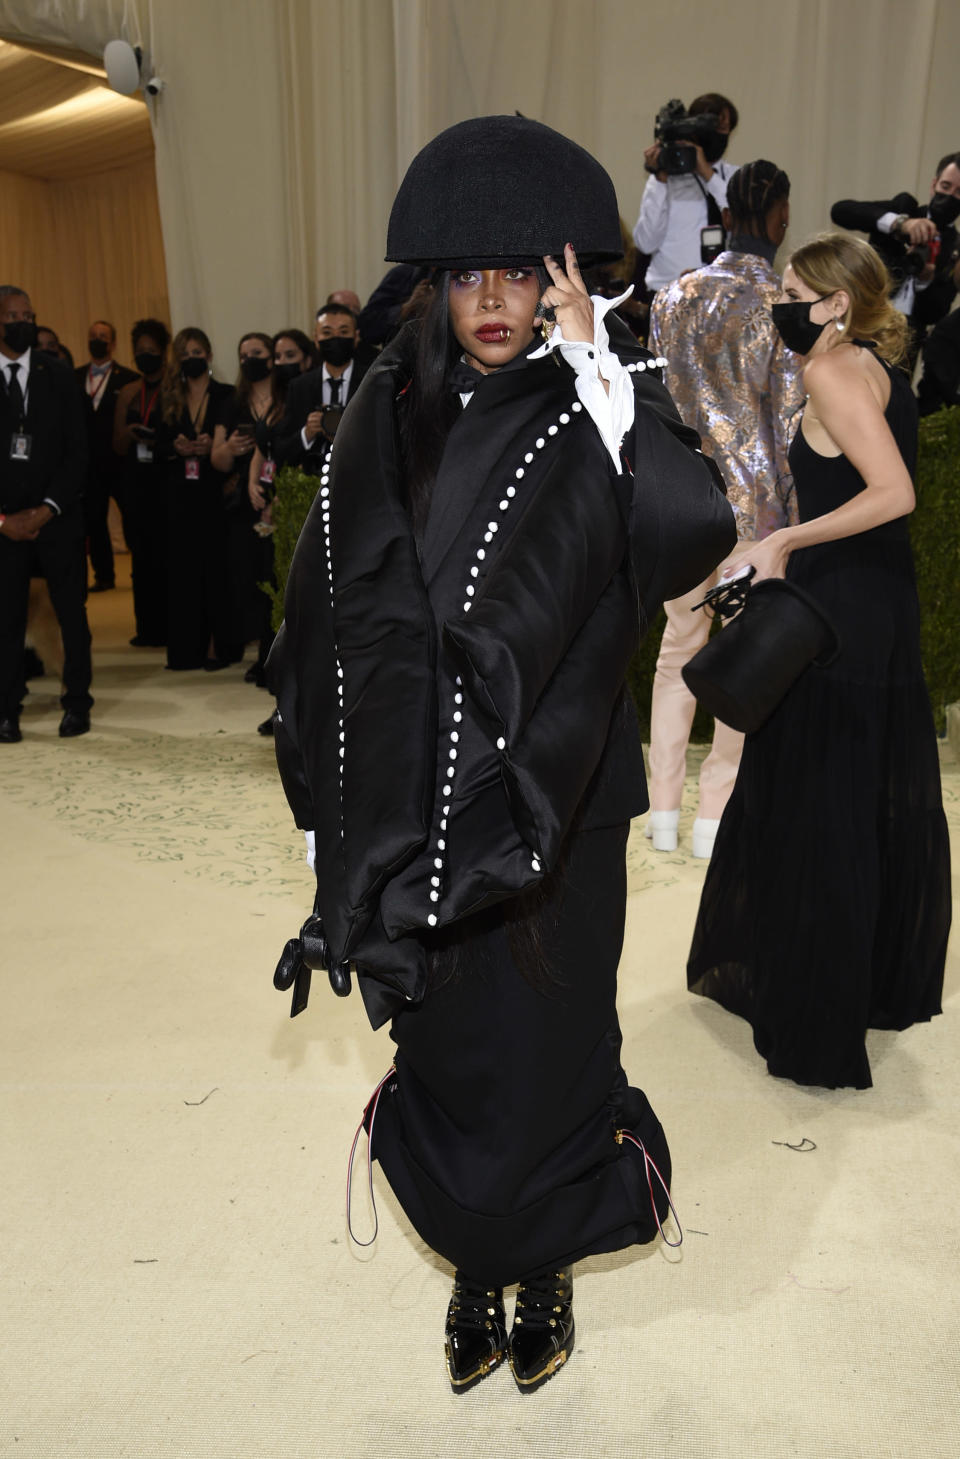 """Erykah Badu attends The Metropolitan Museum of Art's Costume Institute benefit gala celebrating the opening of the """"In America: A Lexicon of Fashion"""" exhibition on Monday, Sept. 13, 2021, in New York. (Photo by Evan Agostini/Invision/AP)"""